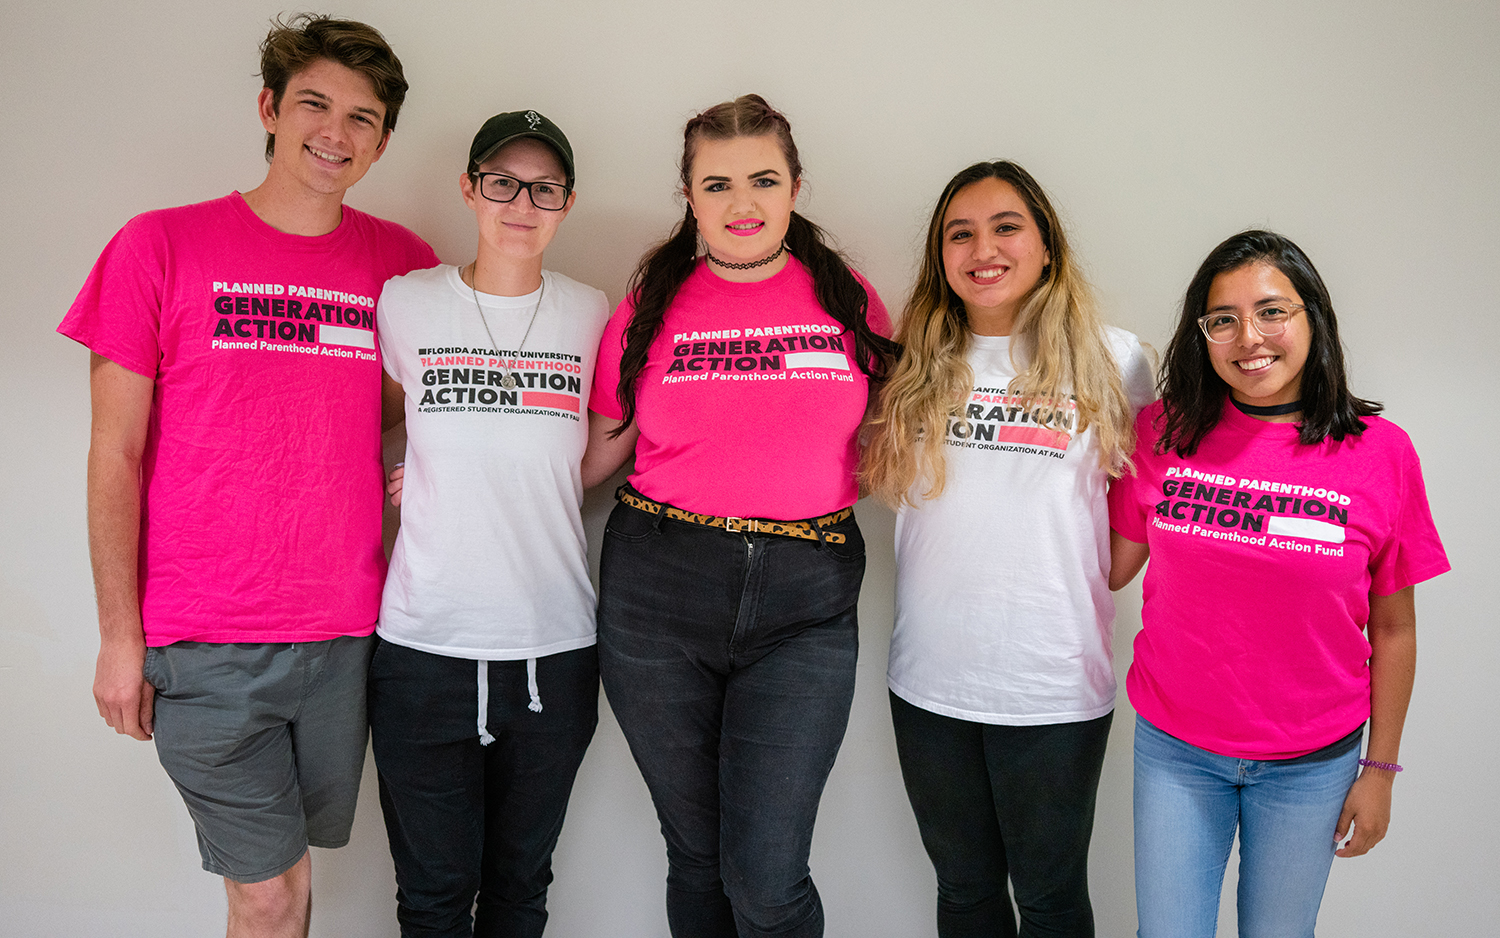 You can find the group handing out condoms on the breezeway. Picture left to right: Alex Bruens, Ally Walchak, Natasha Roberts, Photo by Alex Liscio